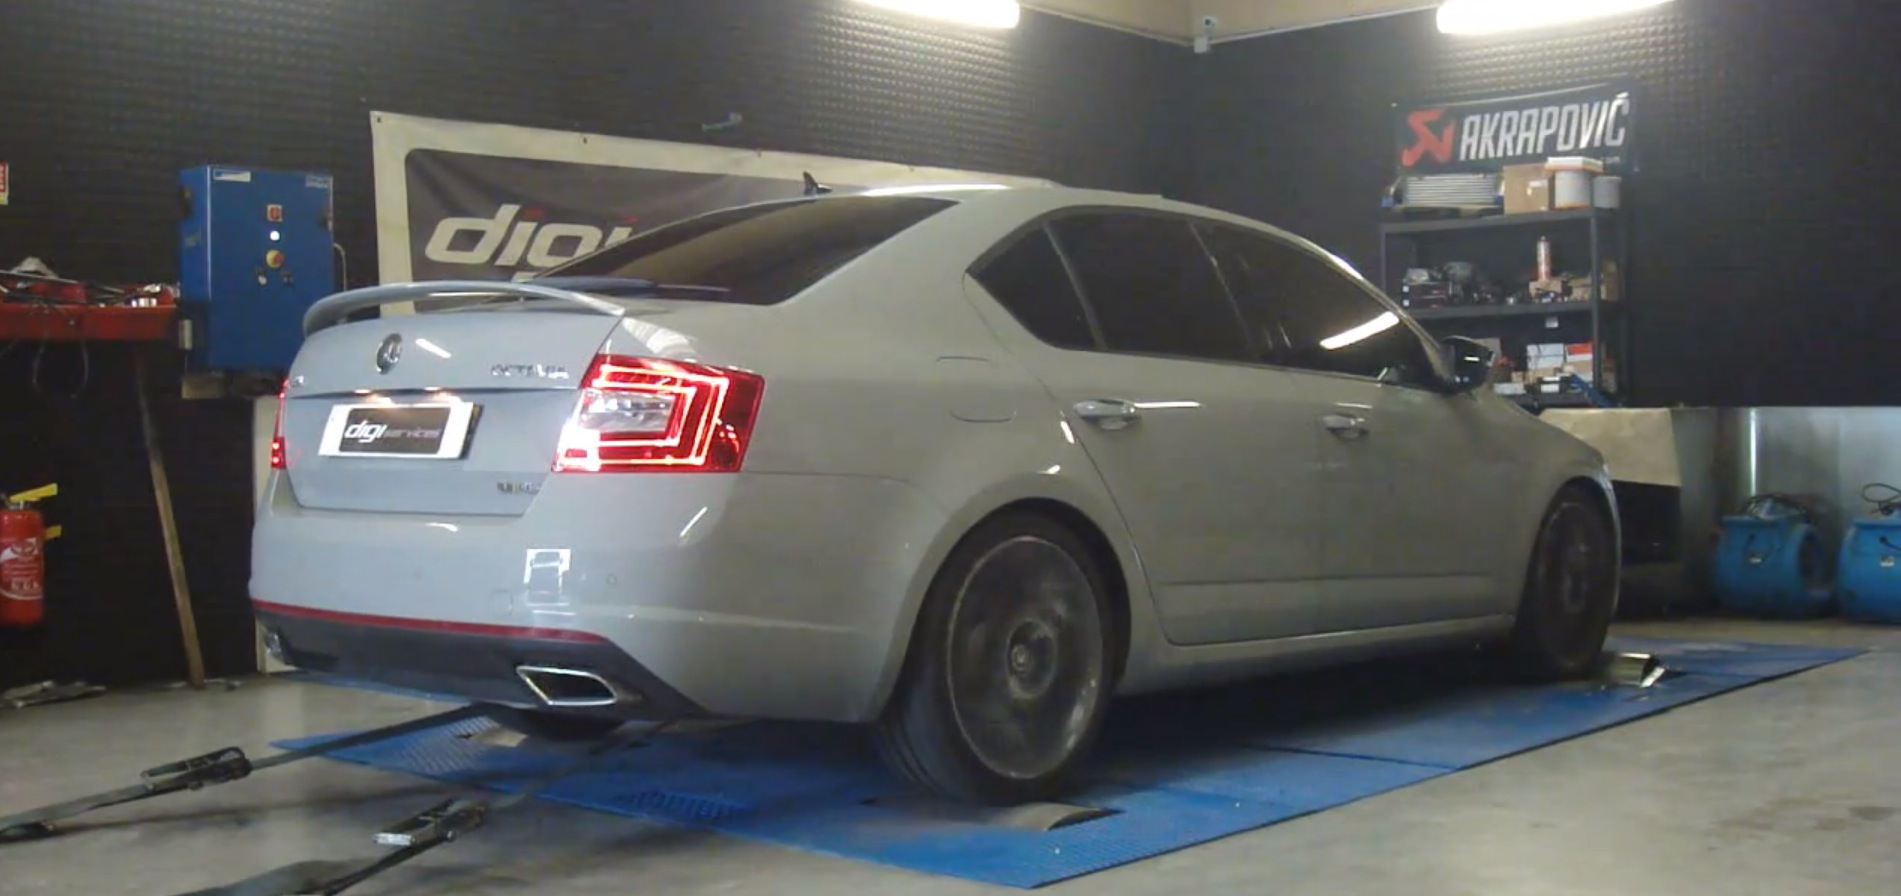 Skoda octavia vrs tdi chip tuned to over 220 hp by digiservices autoevolution